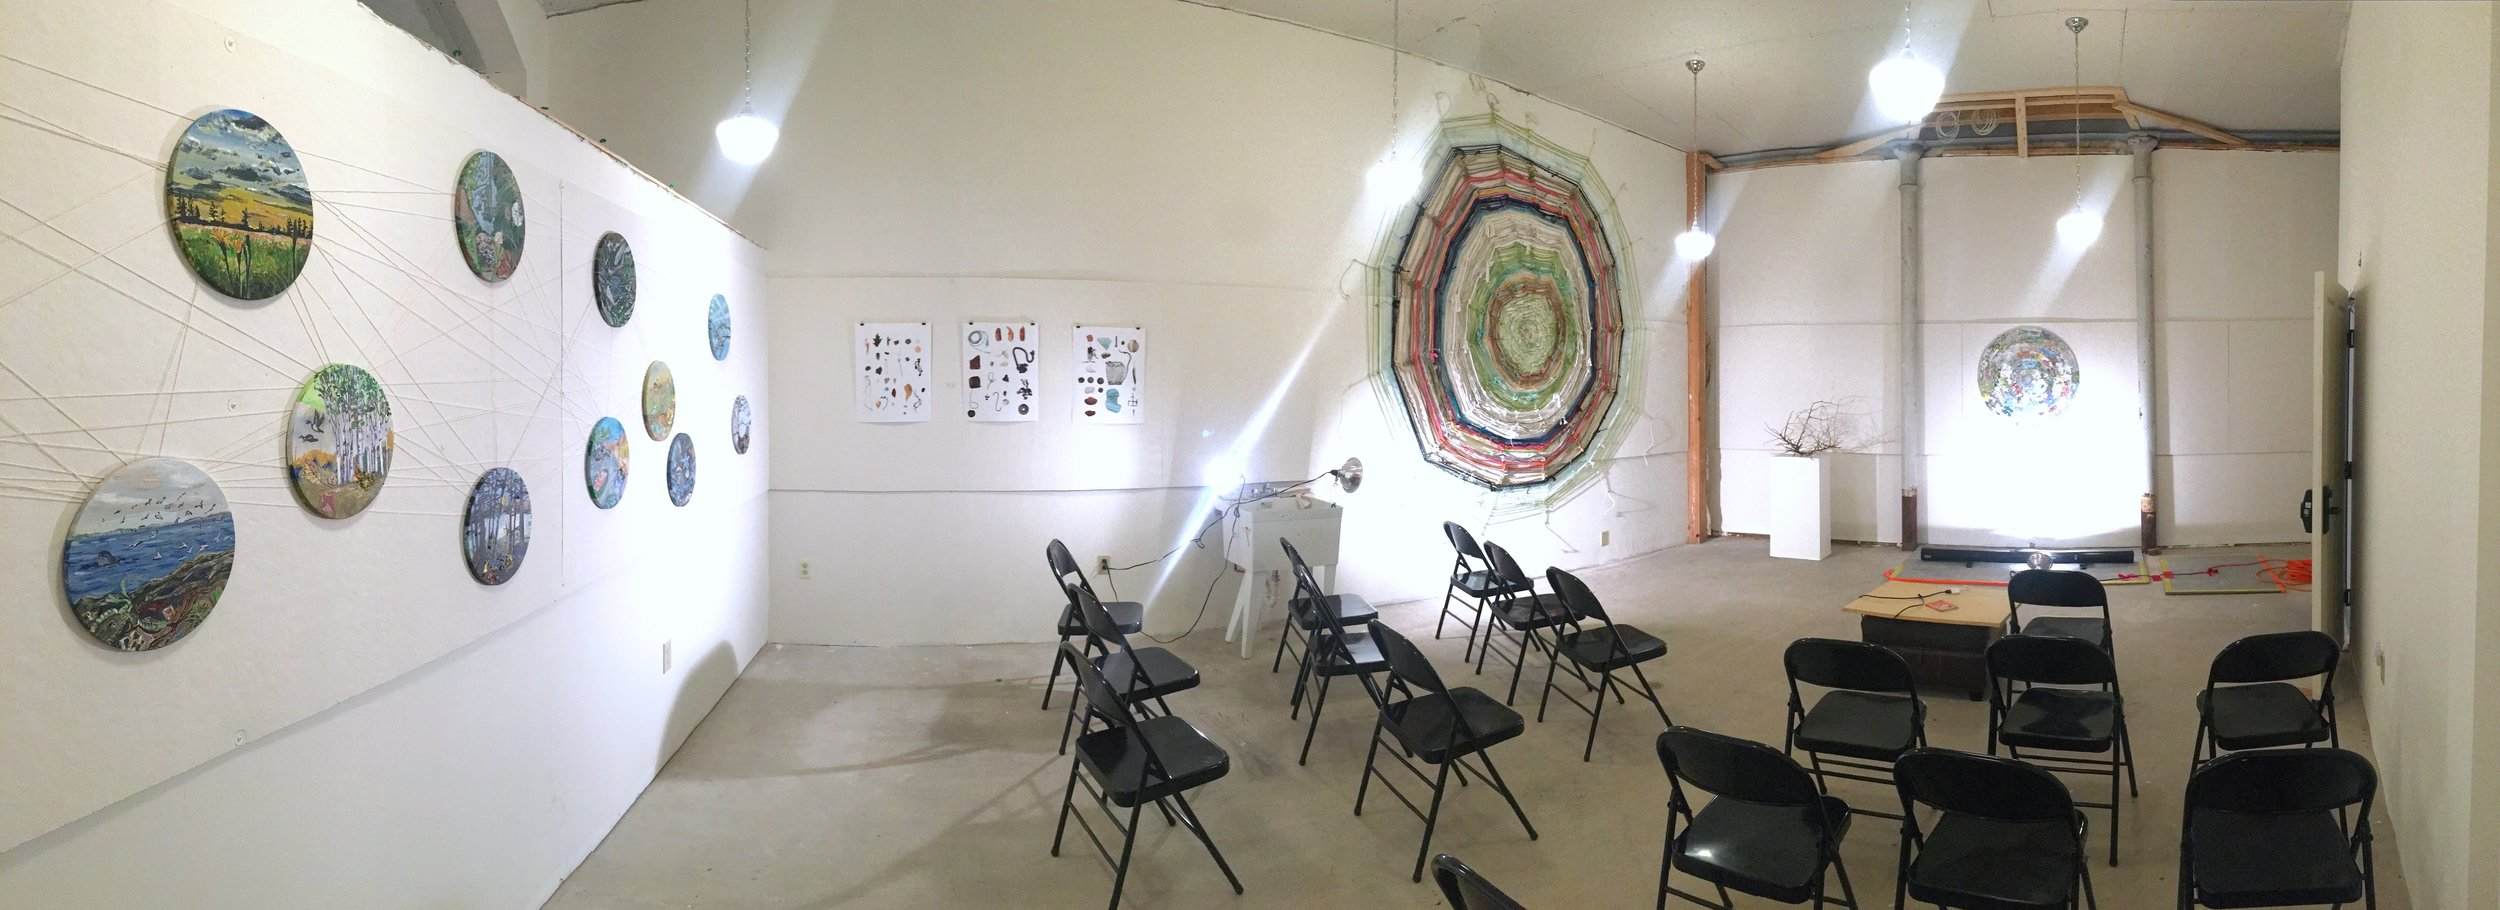 Artworks on display for open studios and artist talk. PC: RIchelle Gribble